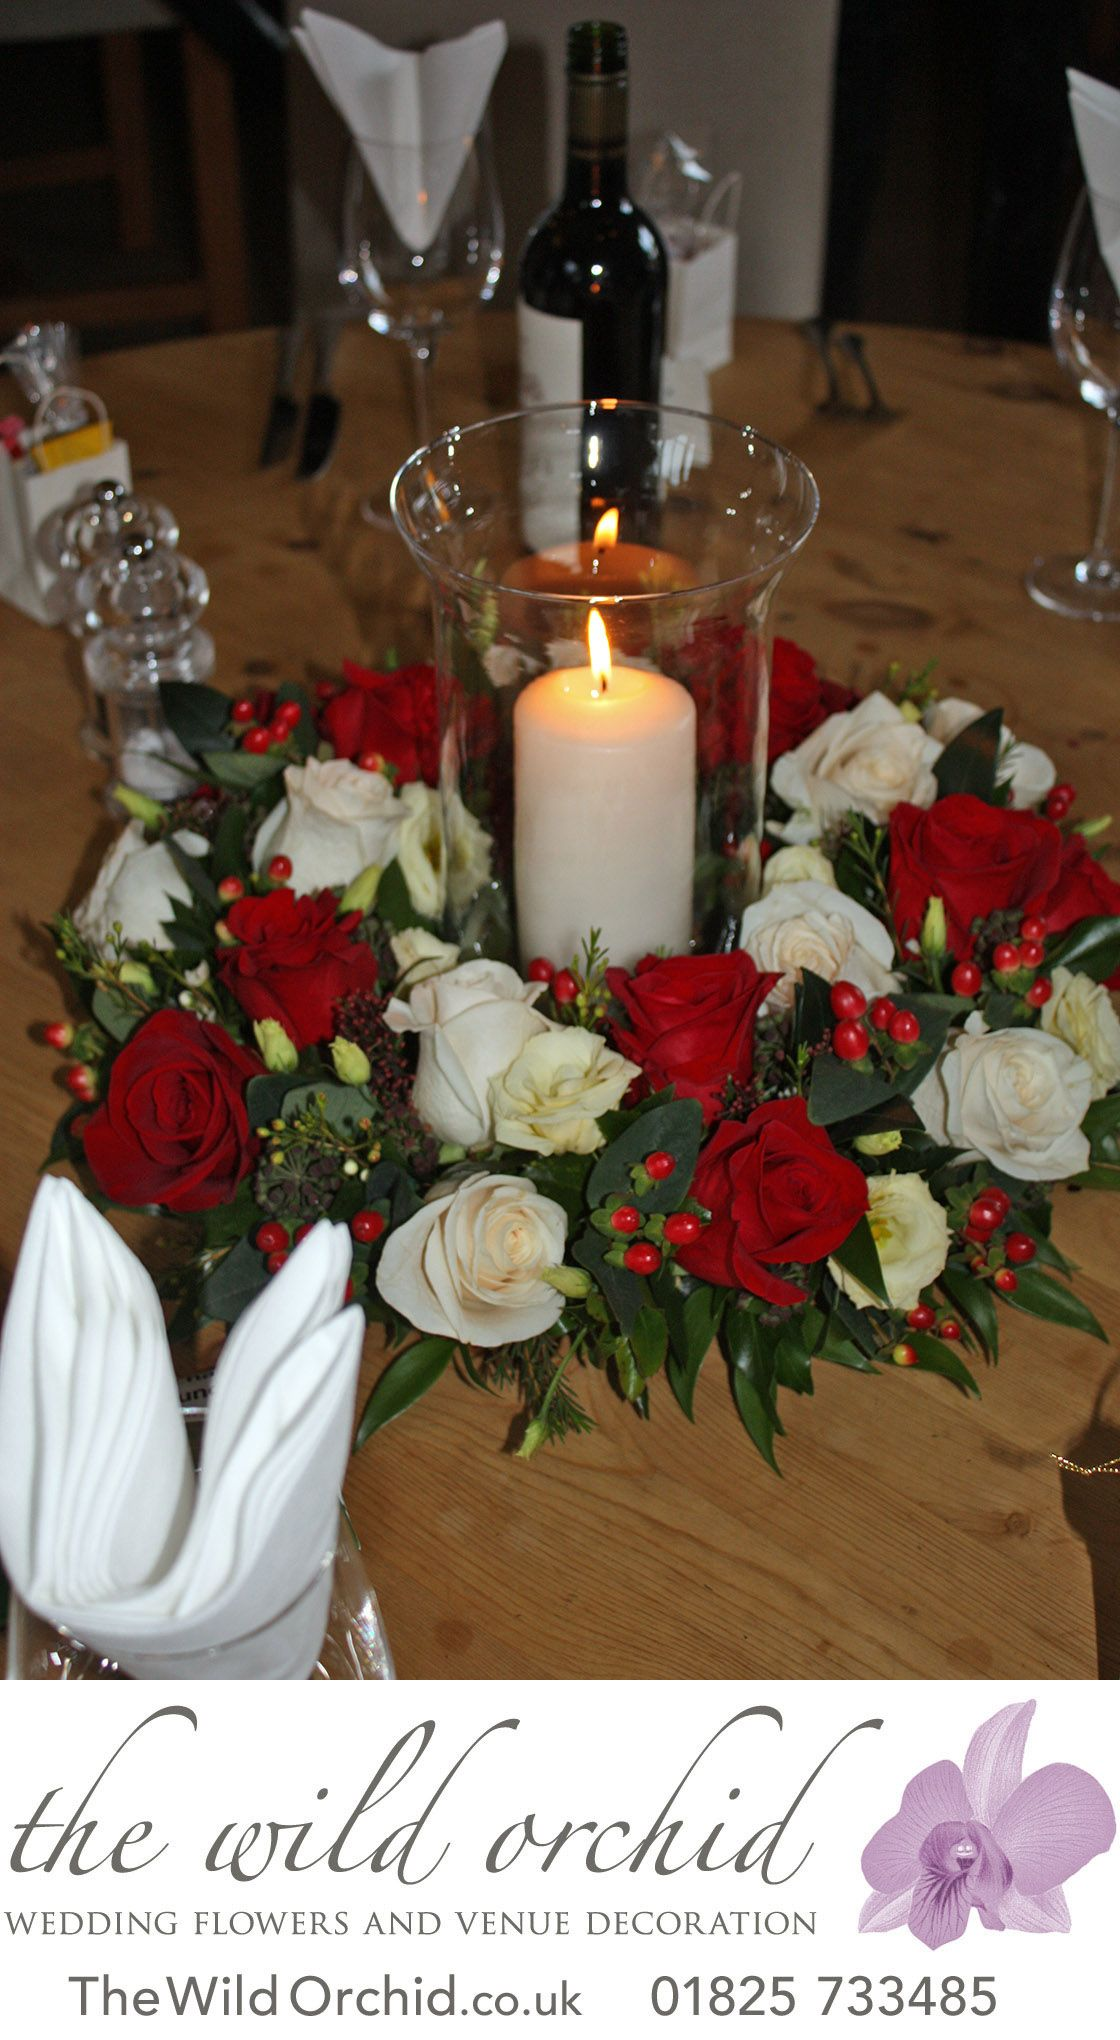 Freya And I Just Wanted To Say A Big Thank You For All Your Help And Organisation Christmas Wedding Flowers Wedding Flower Girl Basket Orchids Wedding Flowers